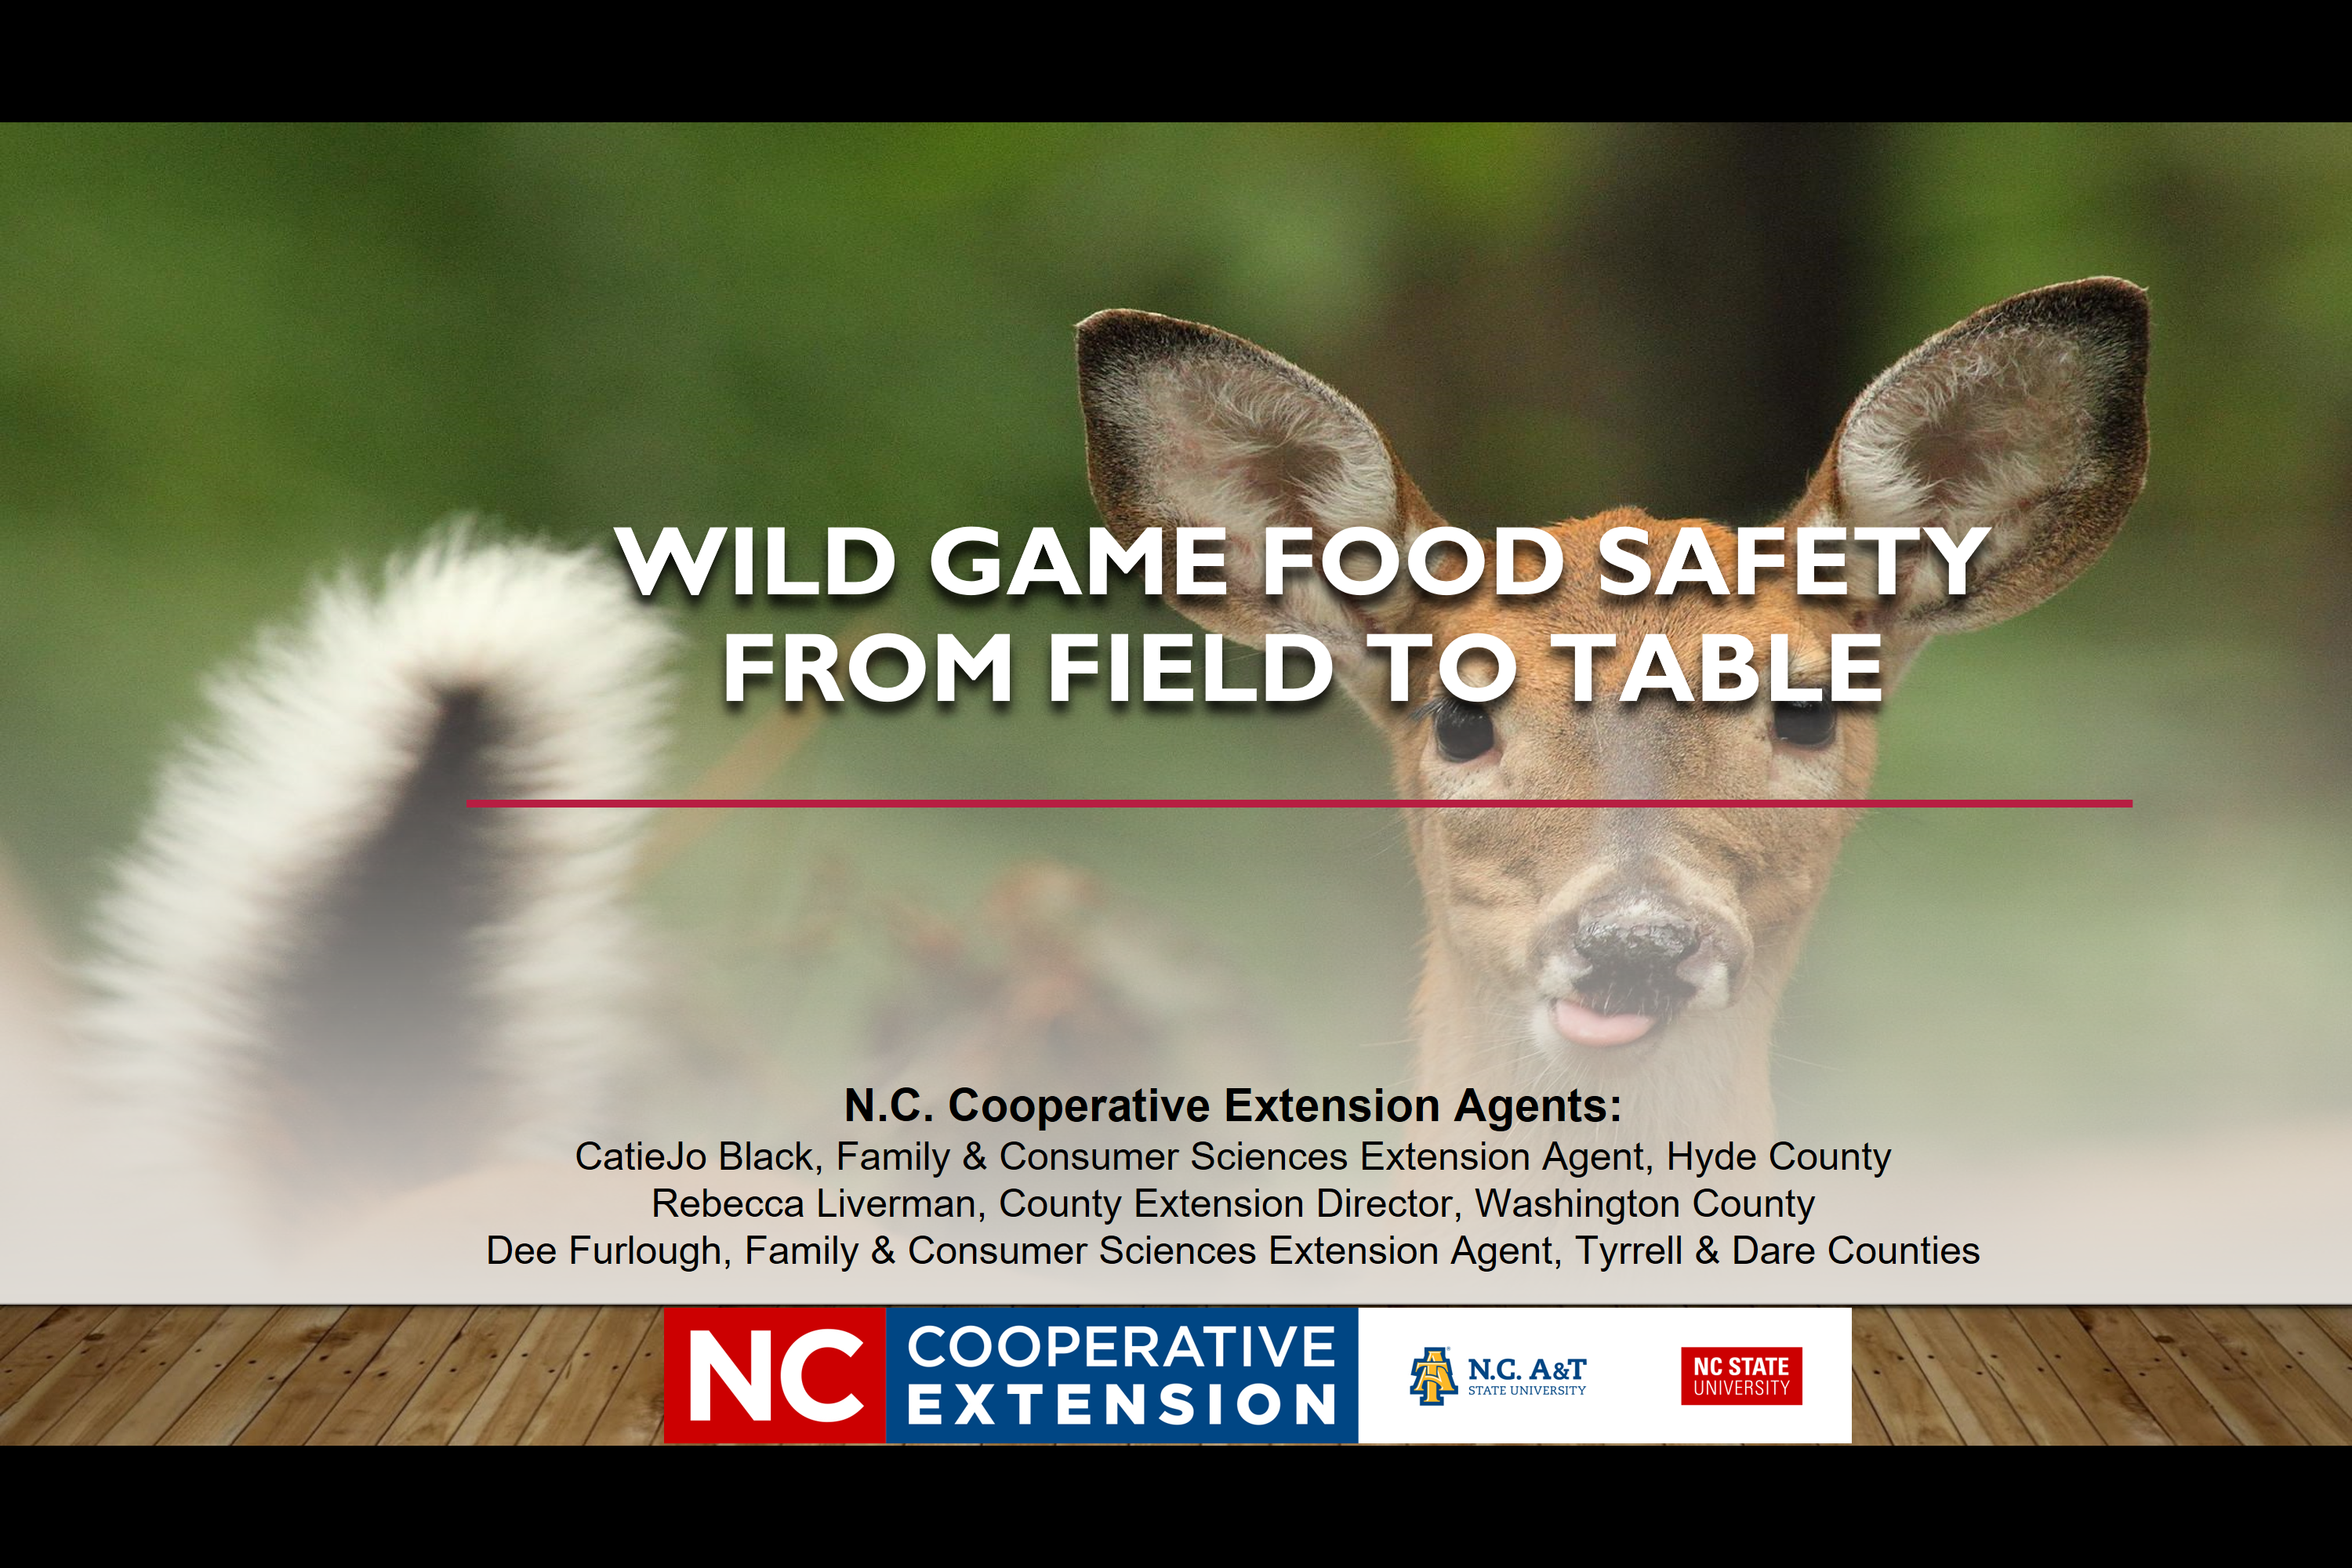 Wild Game Food Safety - From Field to Table